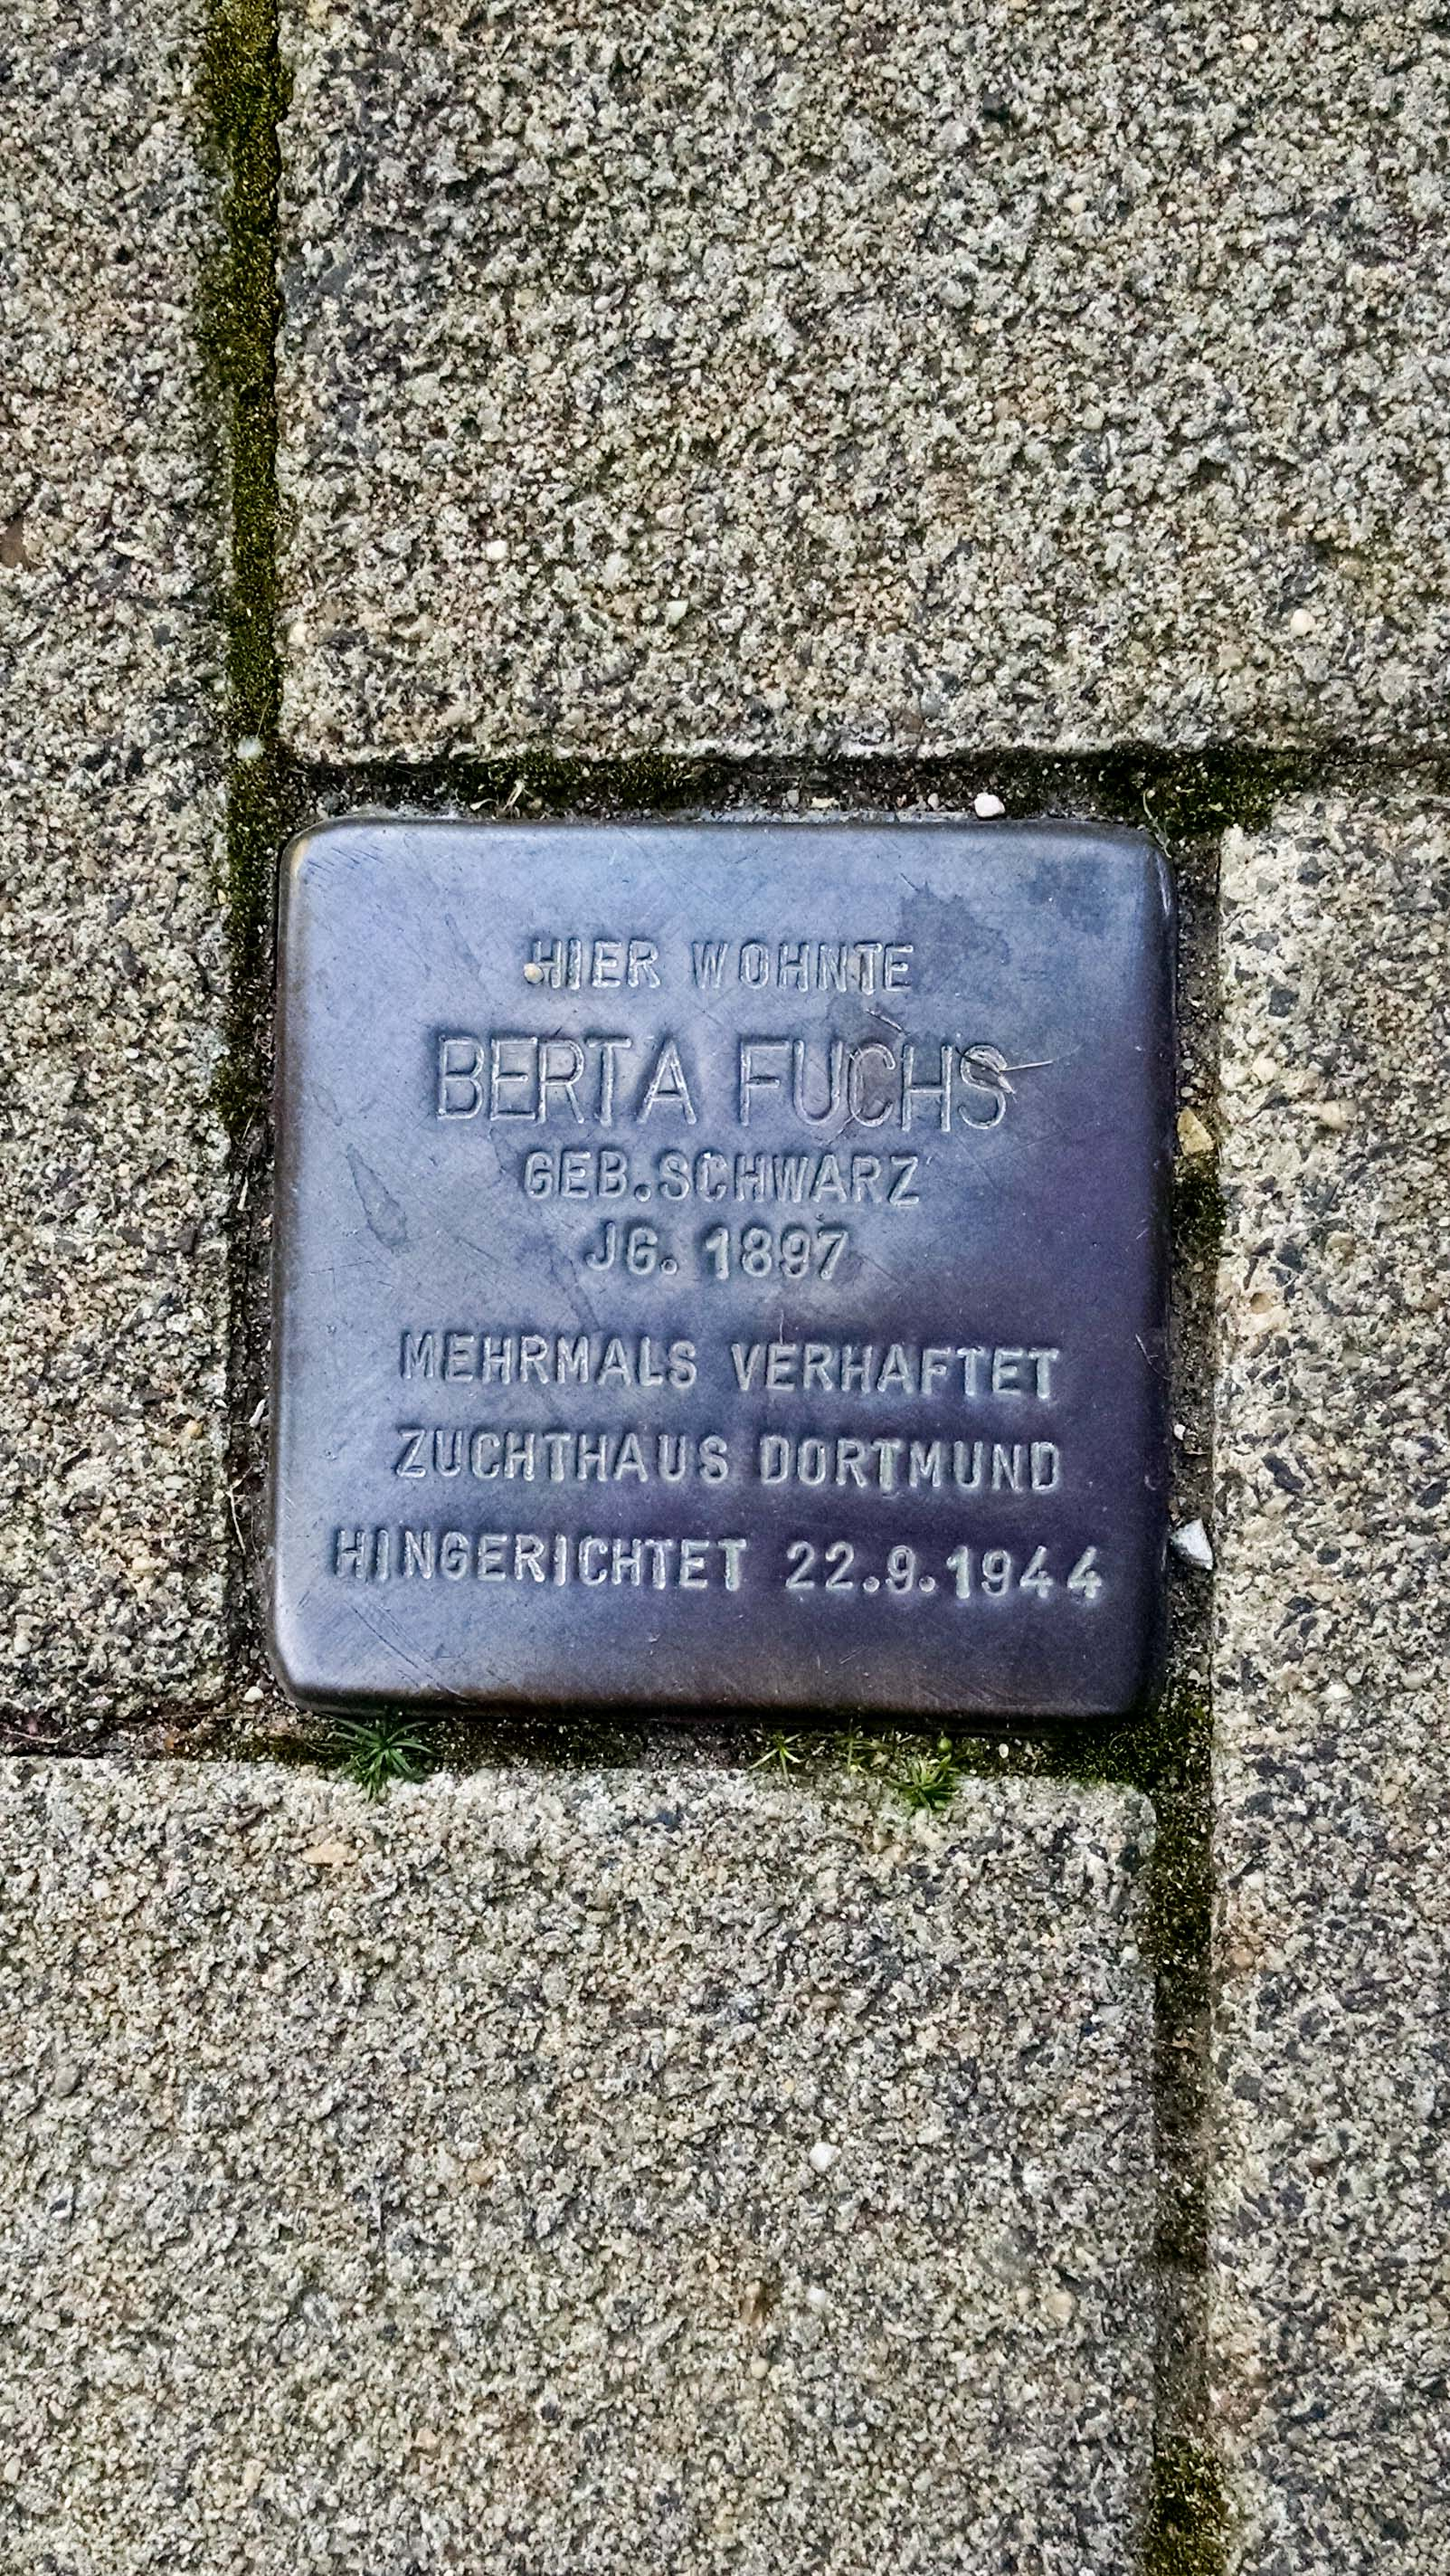 Berta was arrested multiple times and interred in Dortmund before being executed in August of 1944.